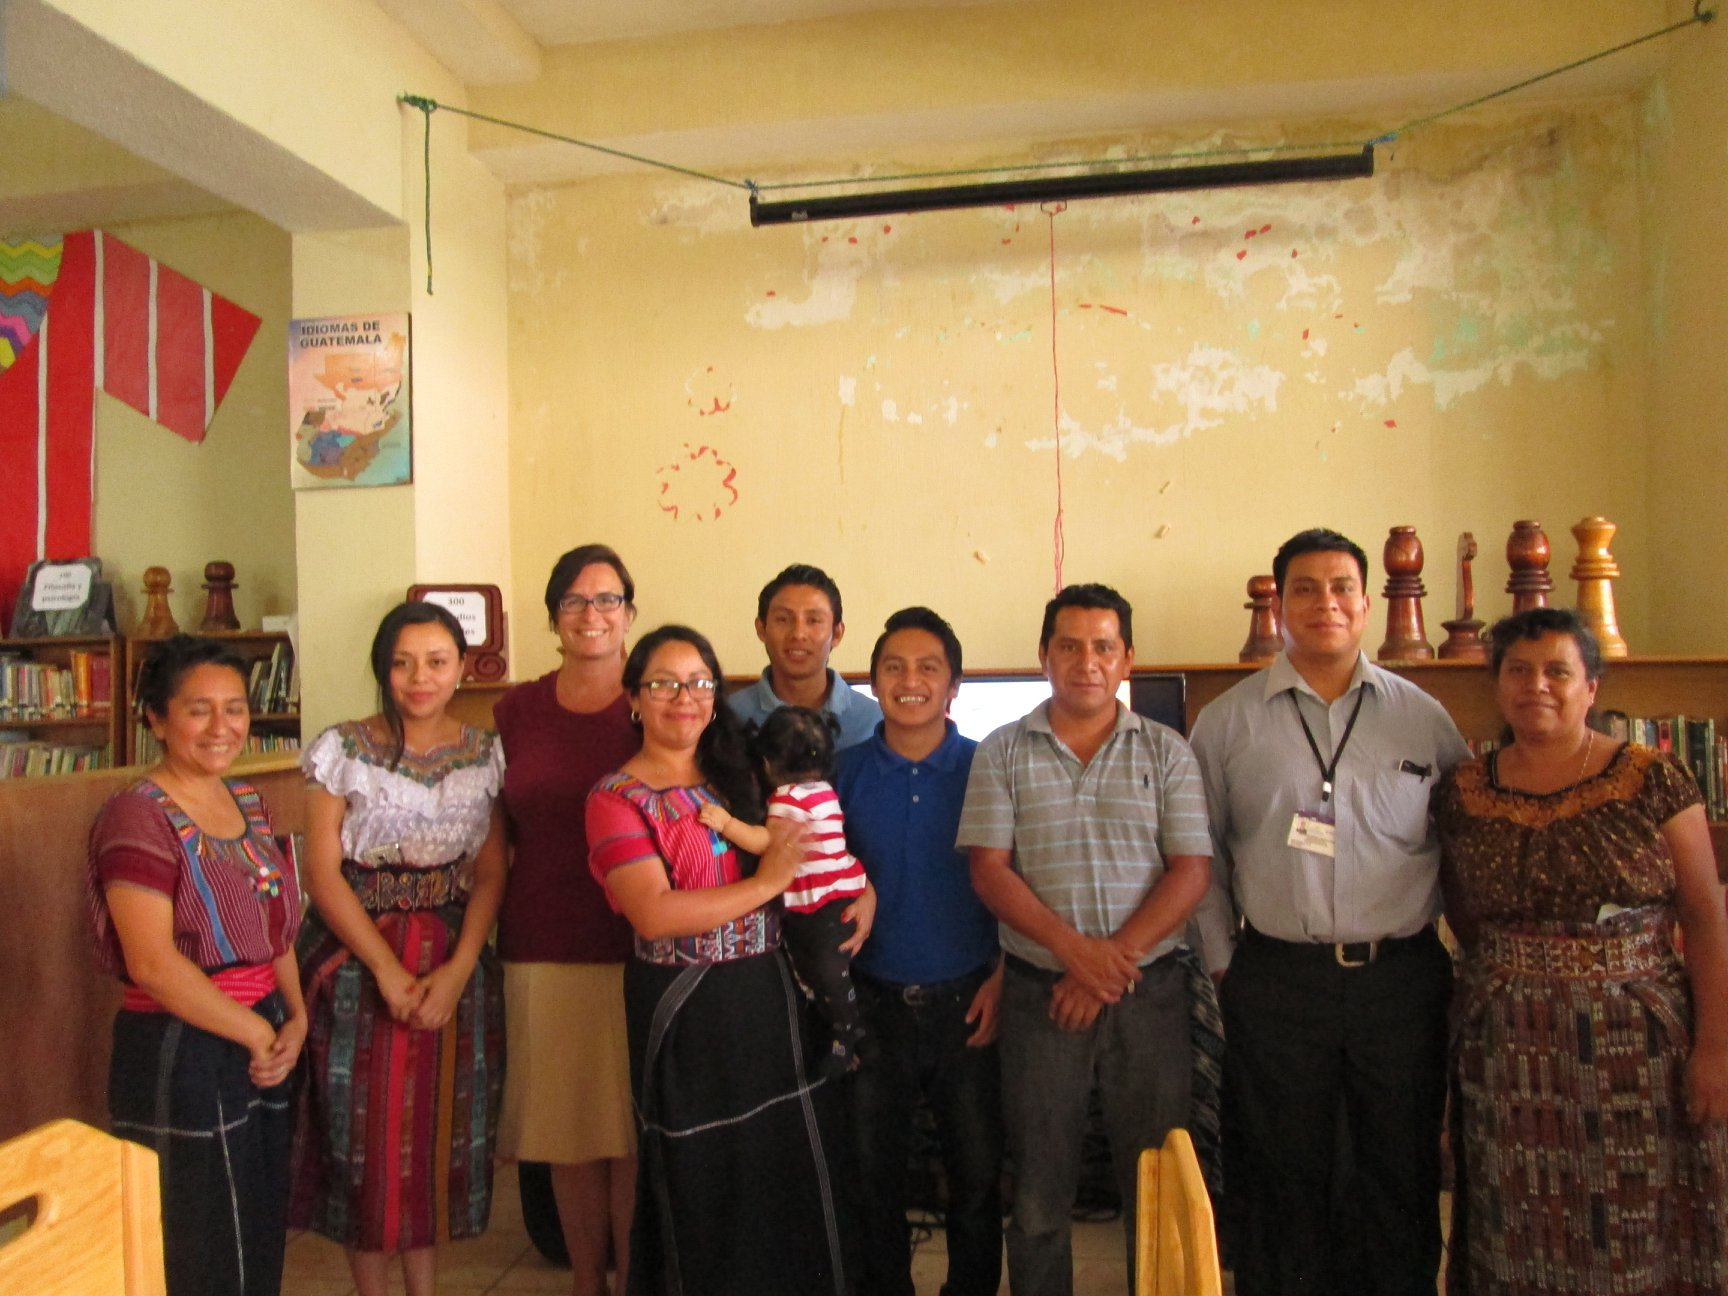 The board of the Rija'tzuul Na'ooj' Community Library in Guatemala. From the library's Facebook page.